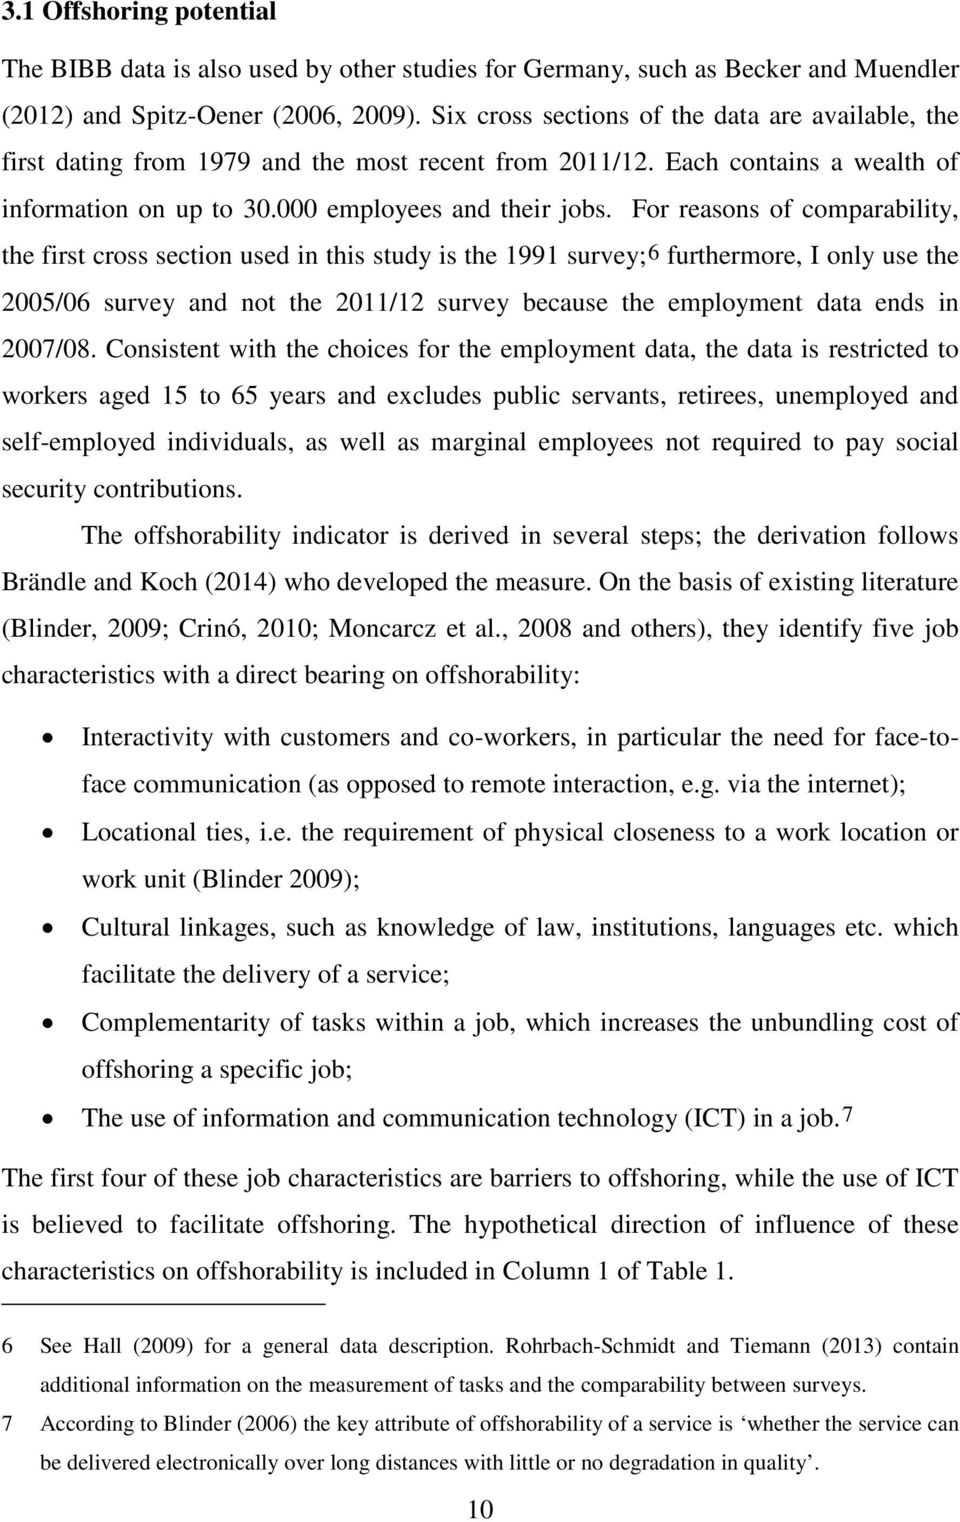 For reasons of comparability, the first cross section used in this study is the 1991 survey;6 furthermore, I only use the 2005/06 survey and not the 2011/12 survey because the employment data ends in